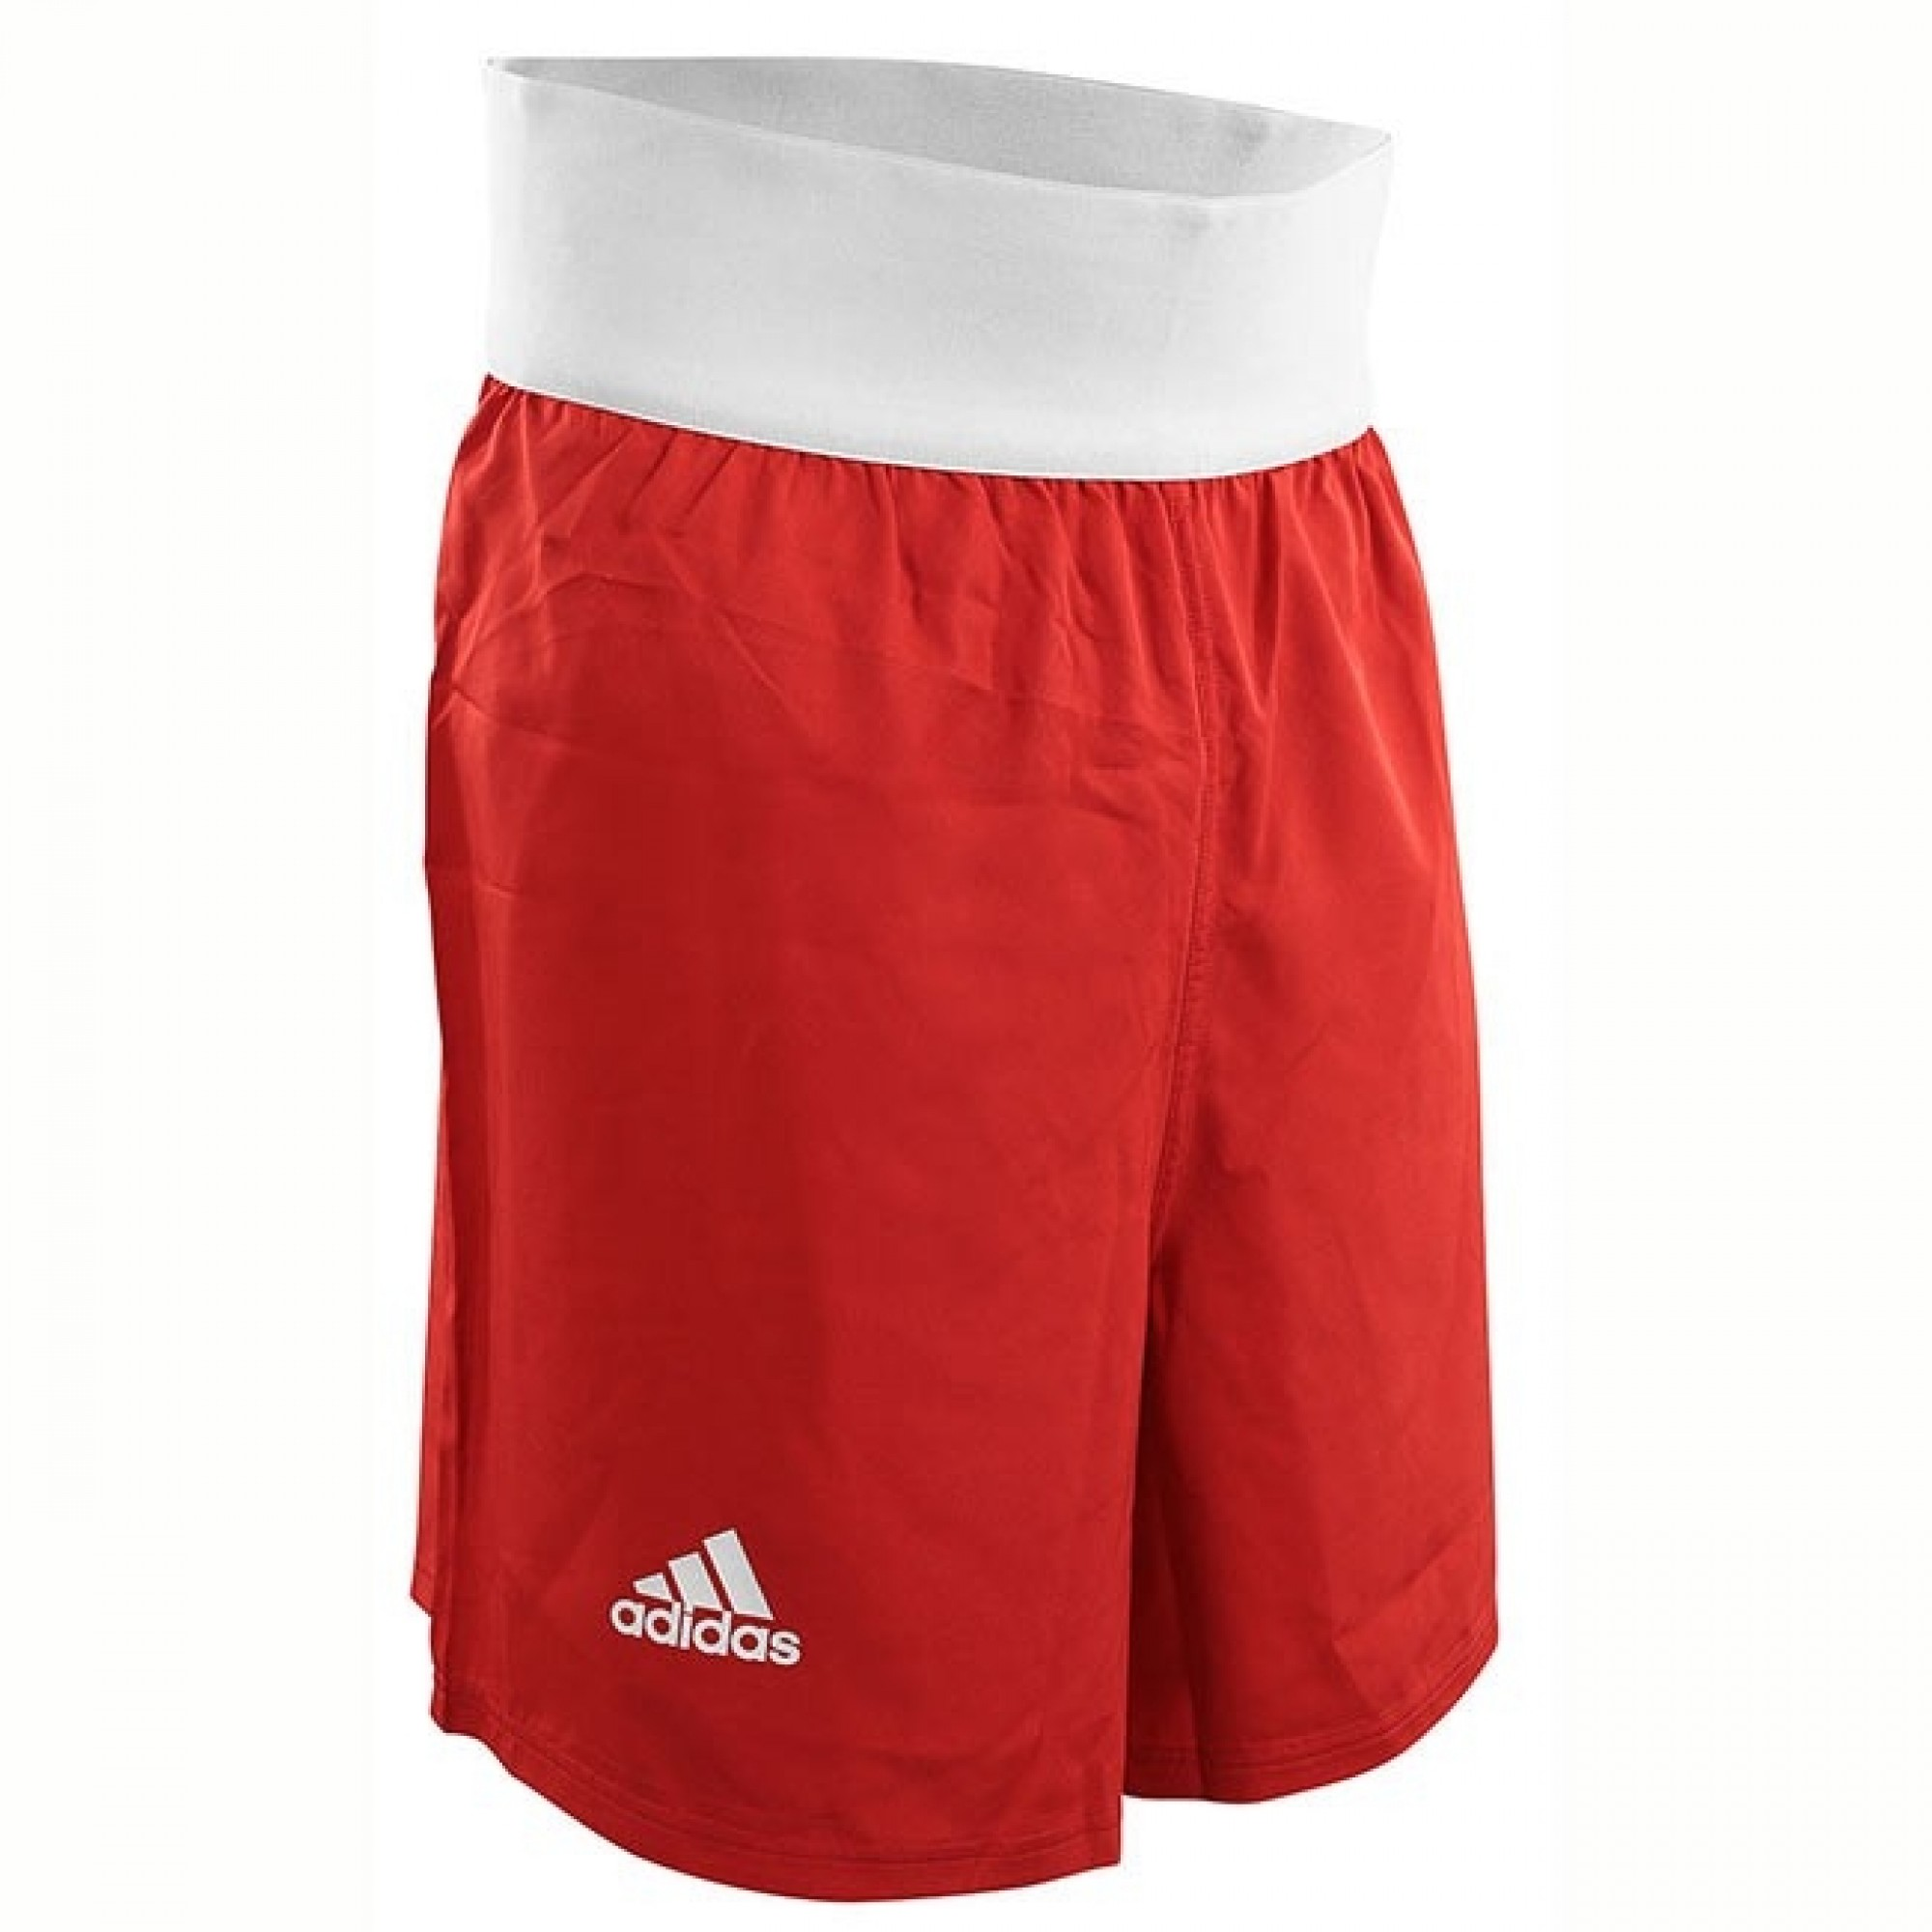 Adidas Base Boxing Shorts- PLEASE CALL FOR AVAILABILITY